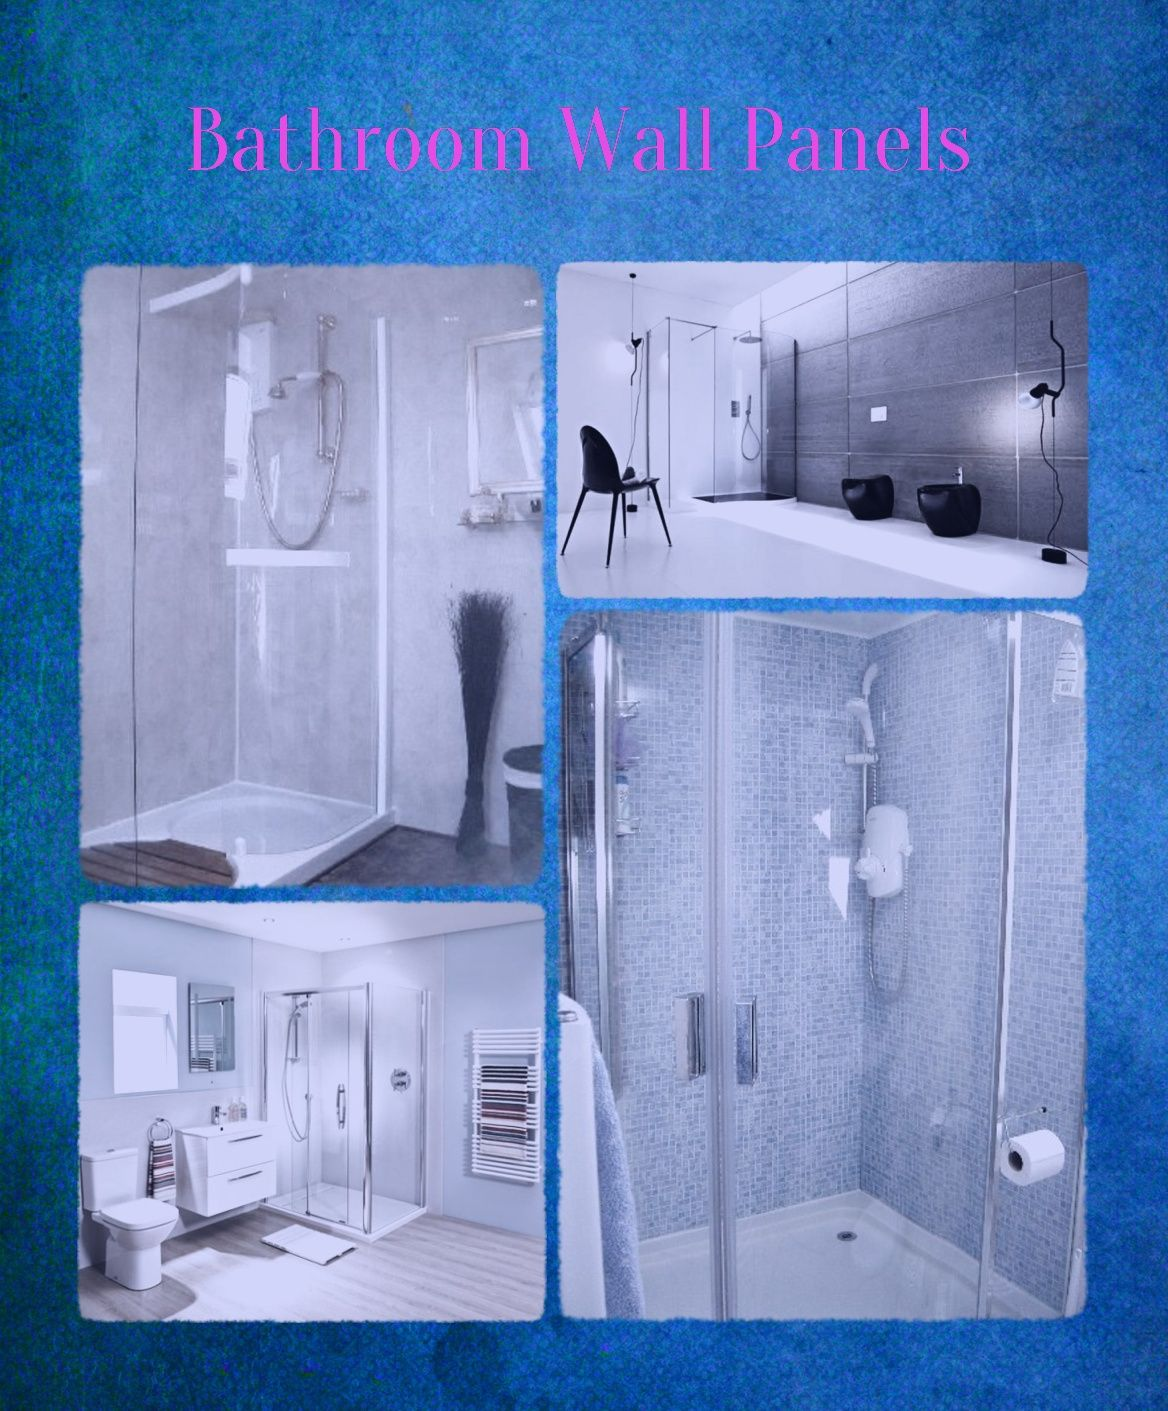 Waterproof Bathroom Wall Panels Design Inspirations 4moltqacom. Waterproof Bathroom Wall Panels   dact us